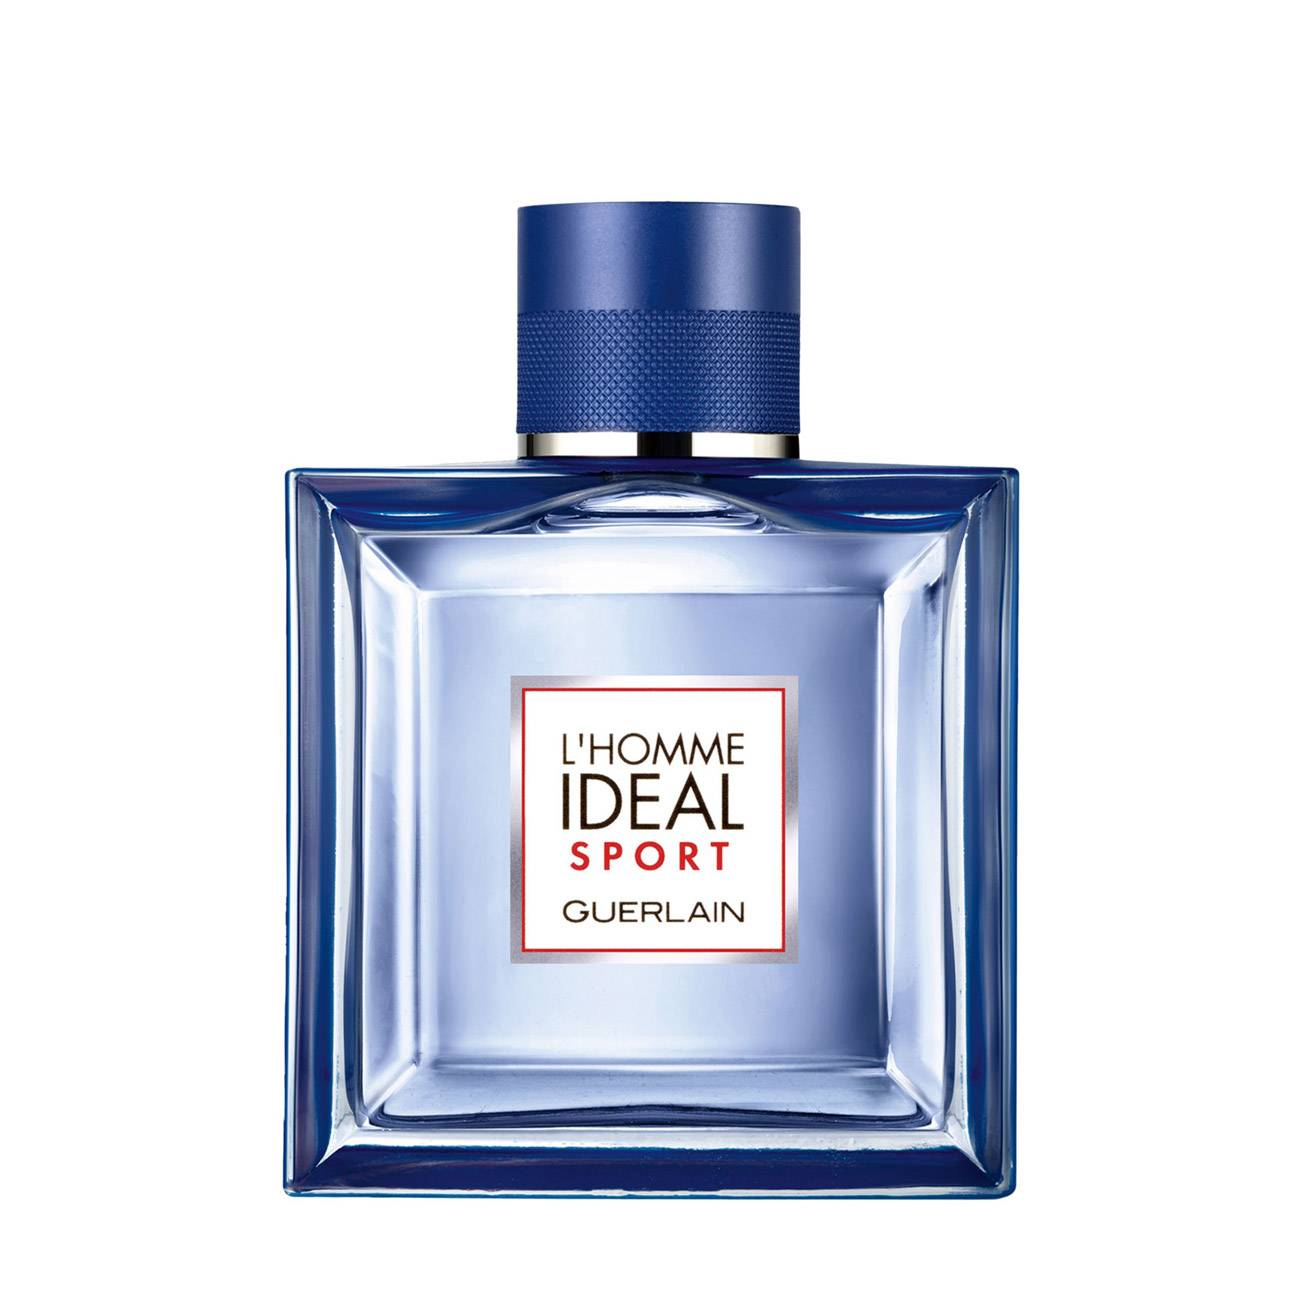 L'HOMME IDEAL SPORT 100ml